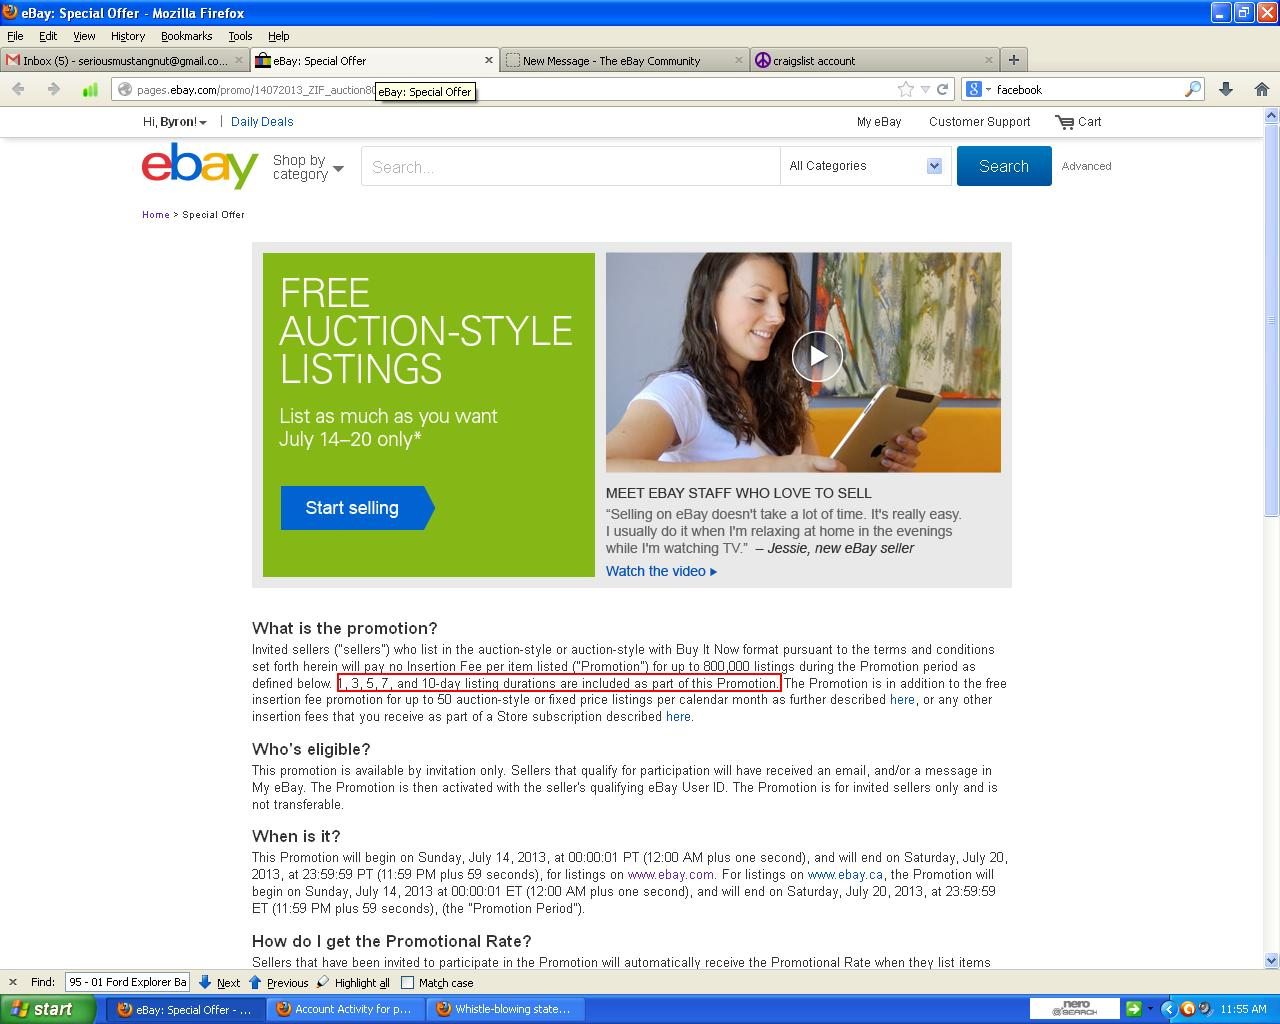 Free Promotion From July 14 20 Charging Fees The Ebay Community